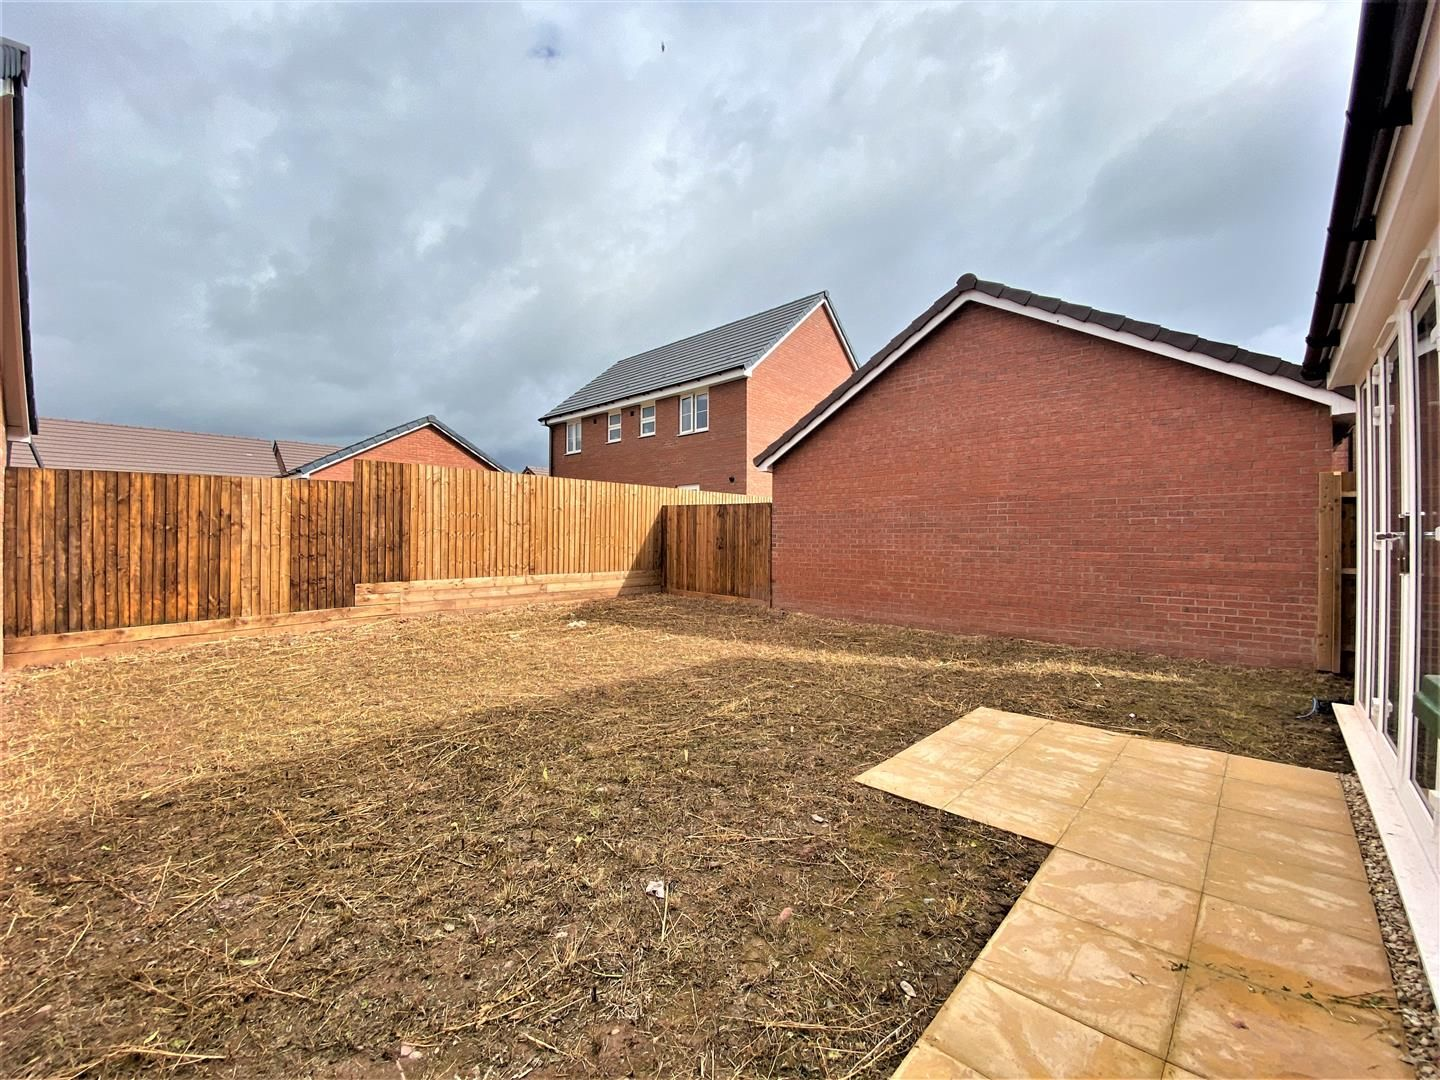 4 bed detached for sale in Kingstone  - Property Image 10